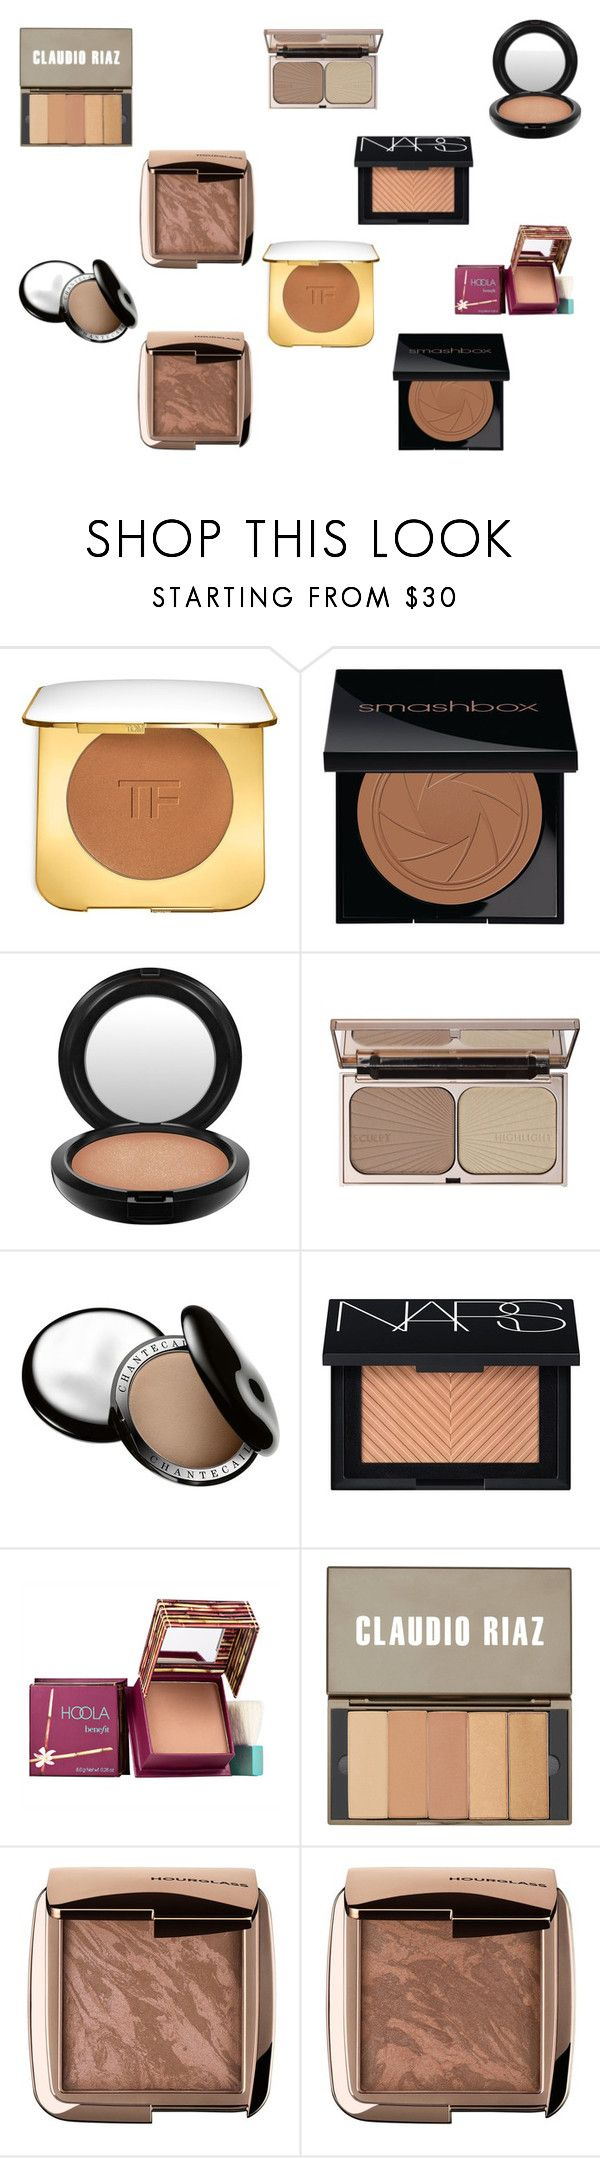 """Current fav bronzers"" by tyronewelle ❤ liked on Polyvore featuring beauty, Tom Ford, Smashbox, MAC Cosmetics, Charlotte Tilbury, Chantecaille, NARS Cosmetics, Benefit, Claudio Riaz and Hourglass Cosmetics"